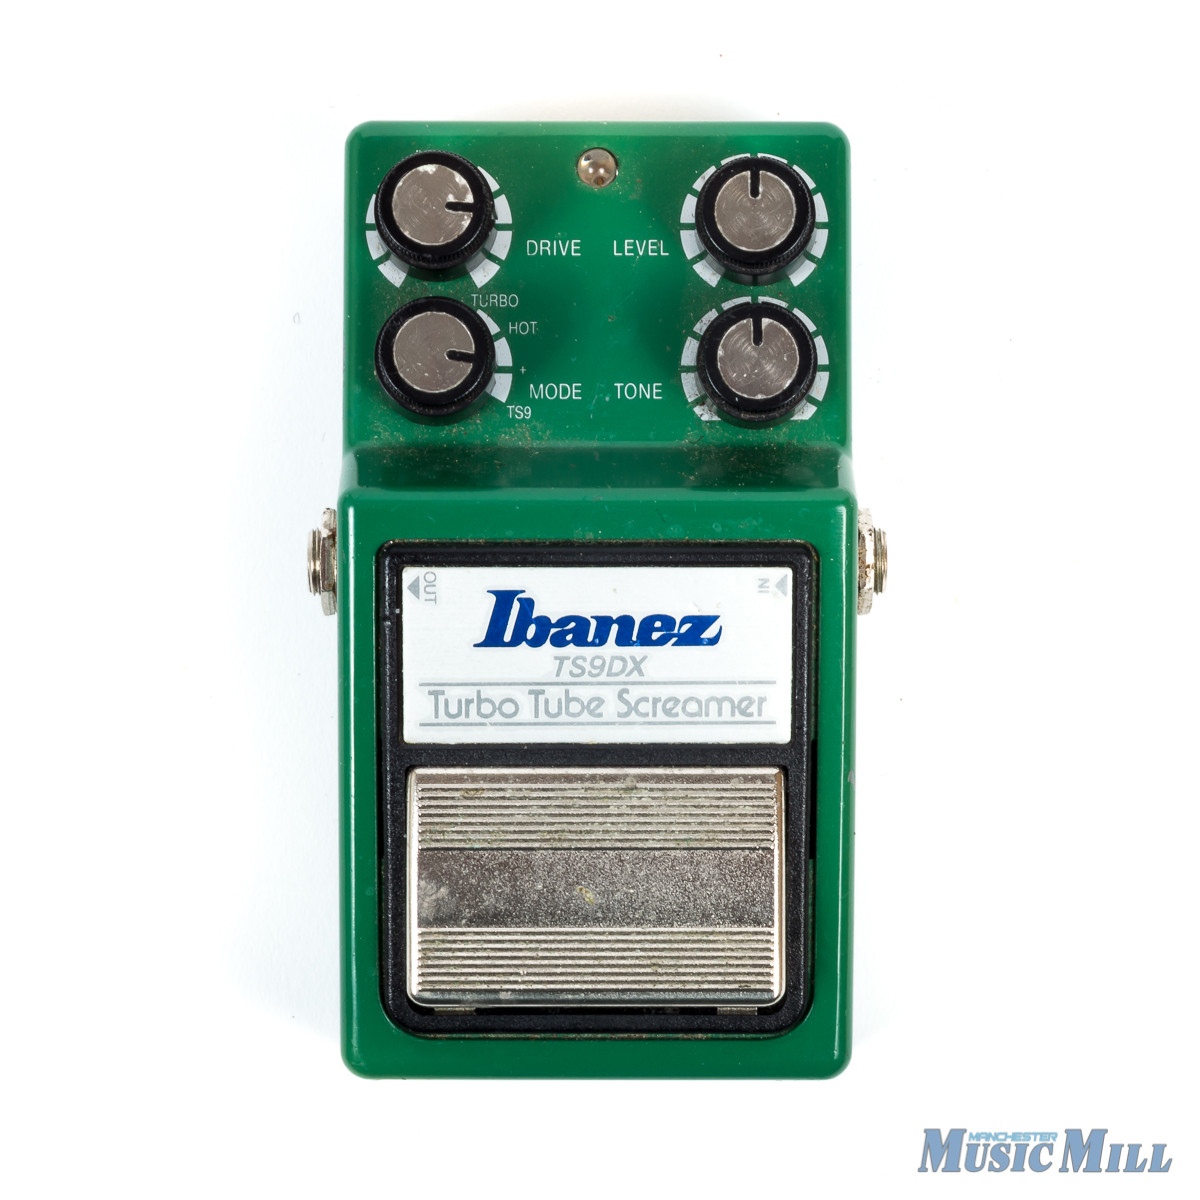 Ibanez TS9DX Turbo Tube Screamer Guitar Effects Pedal